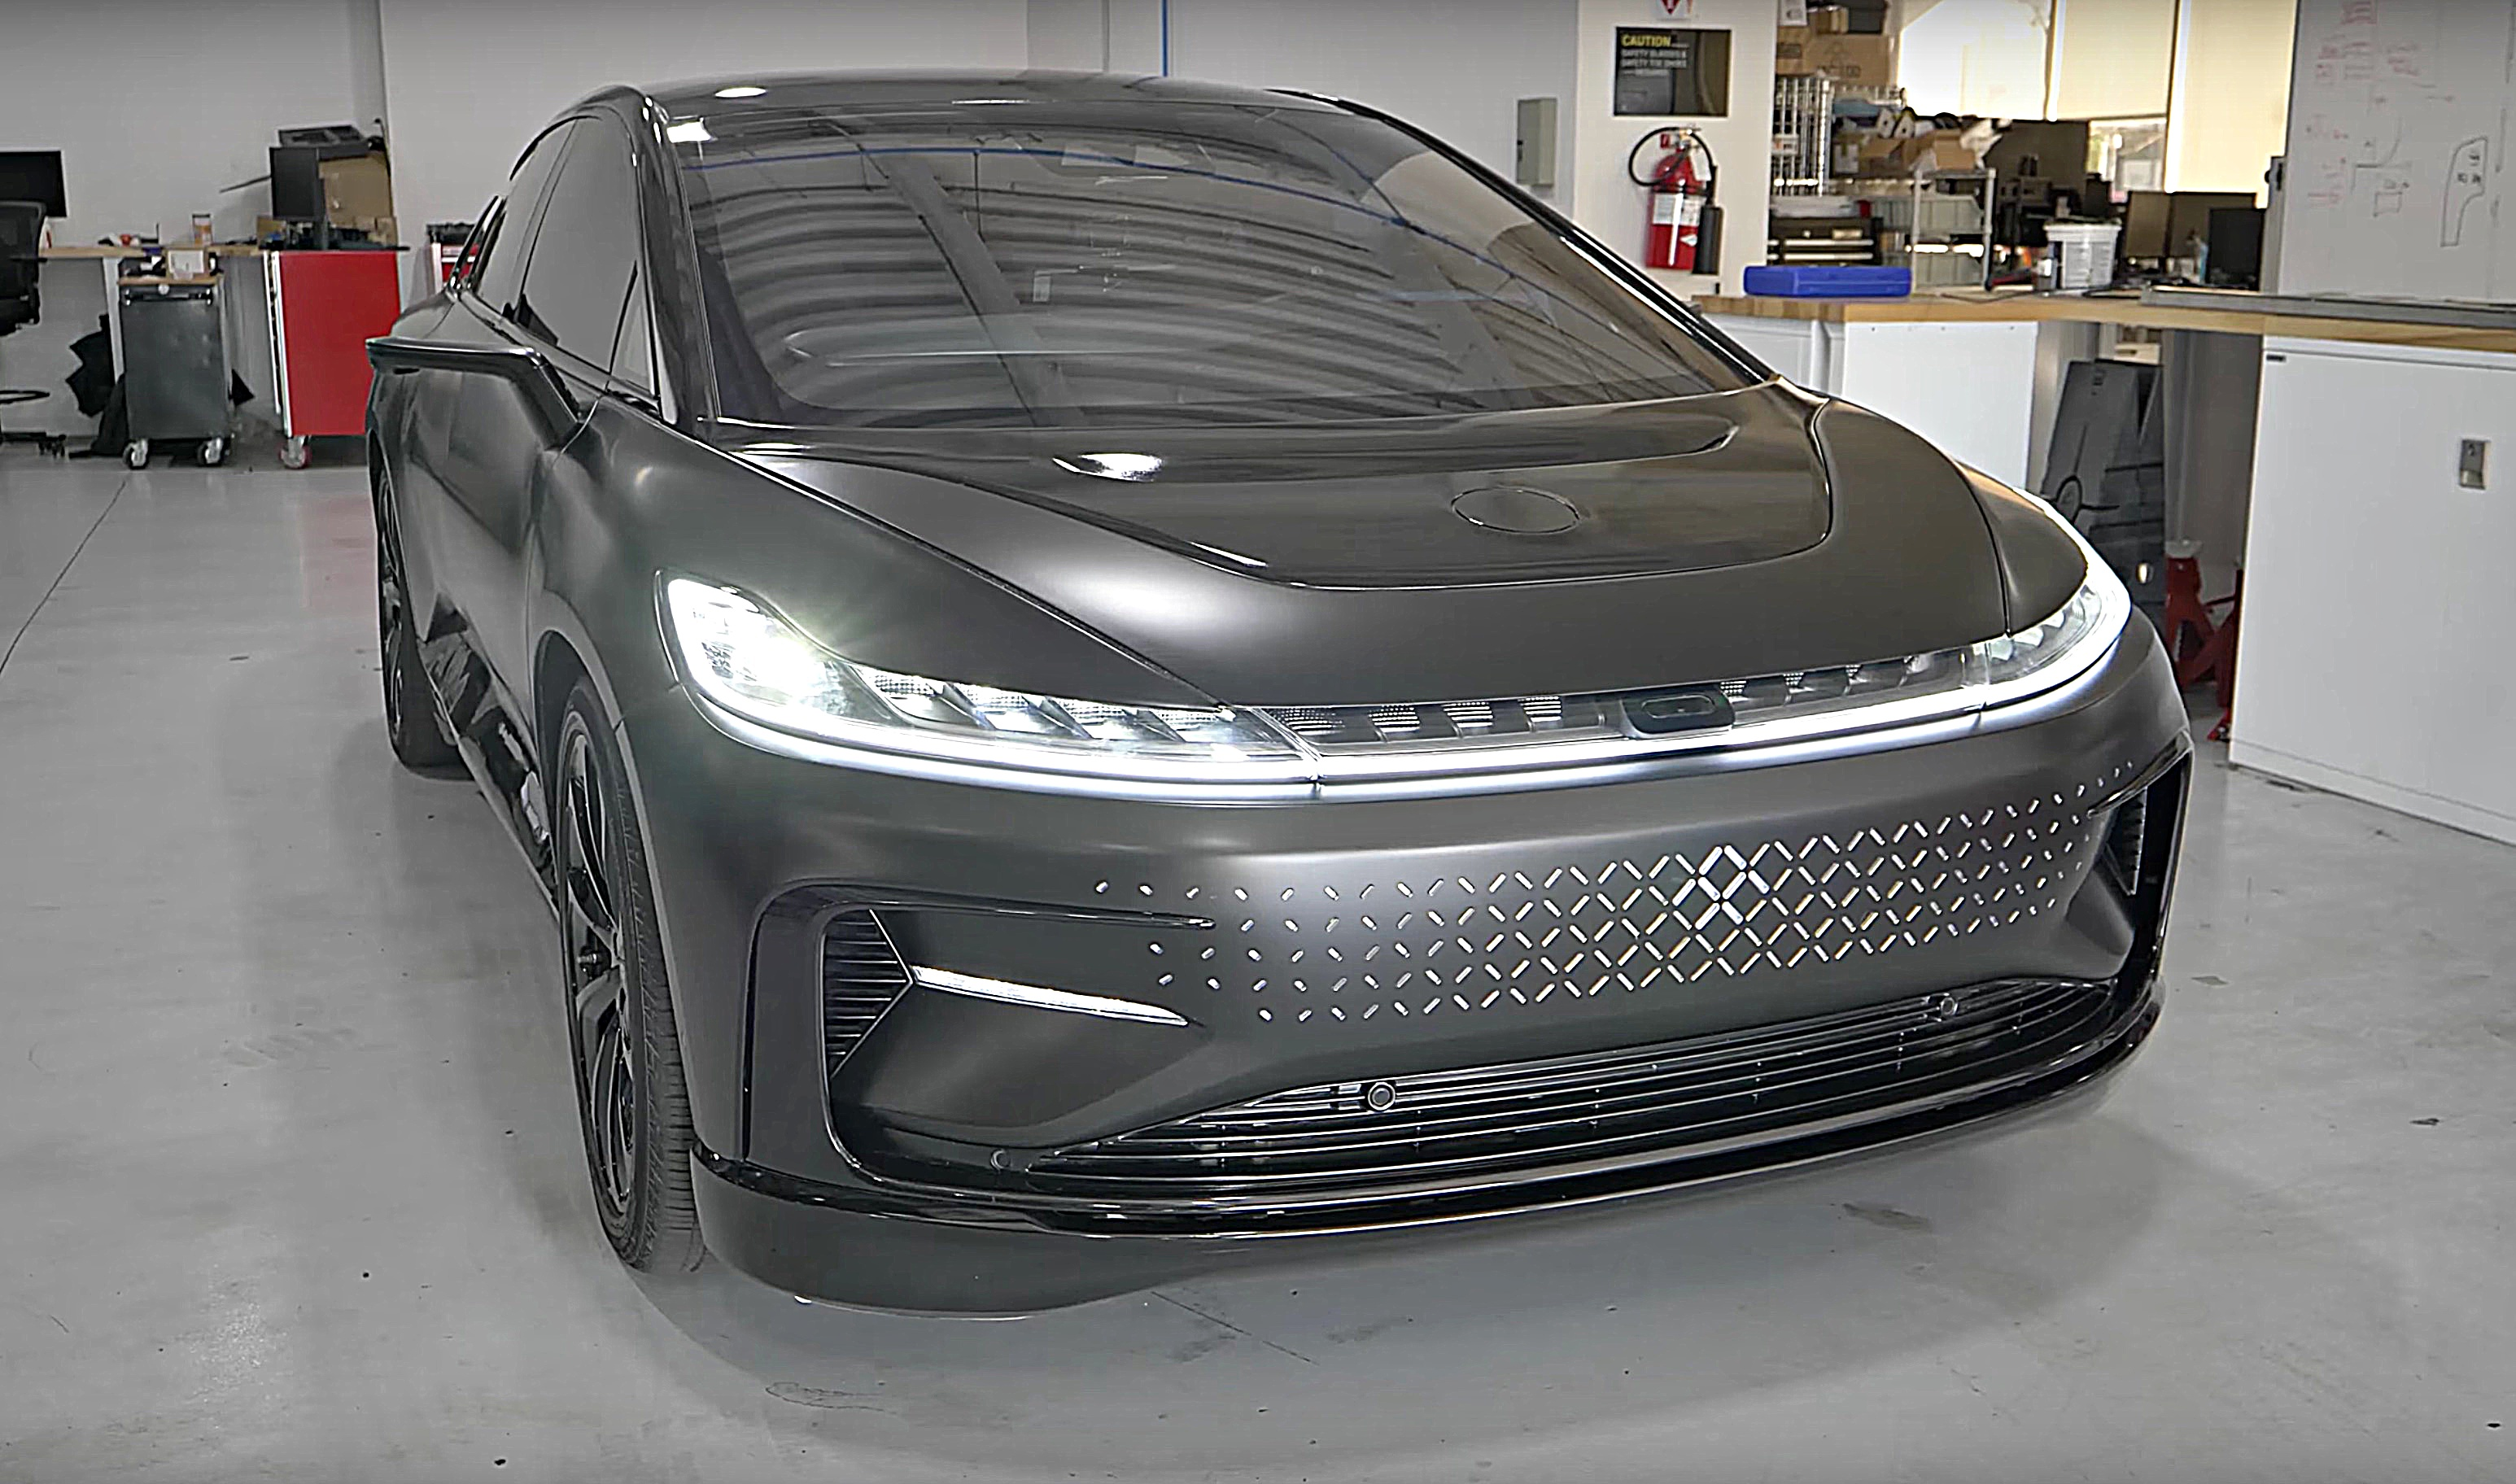 Rare Look Inside Faraday Future S Hq Revealed In Sponsored Video Tesla Got Nothing On It